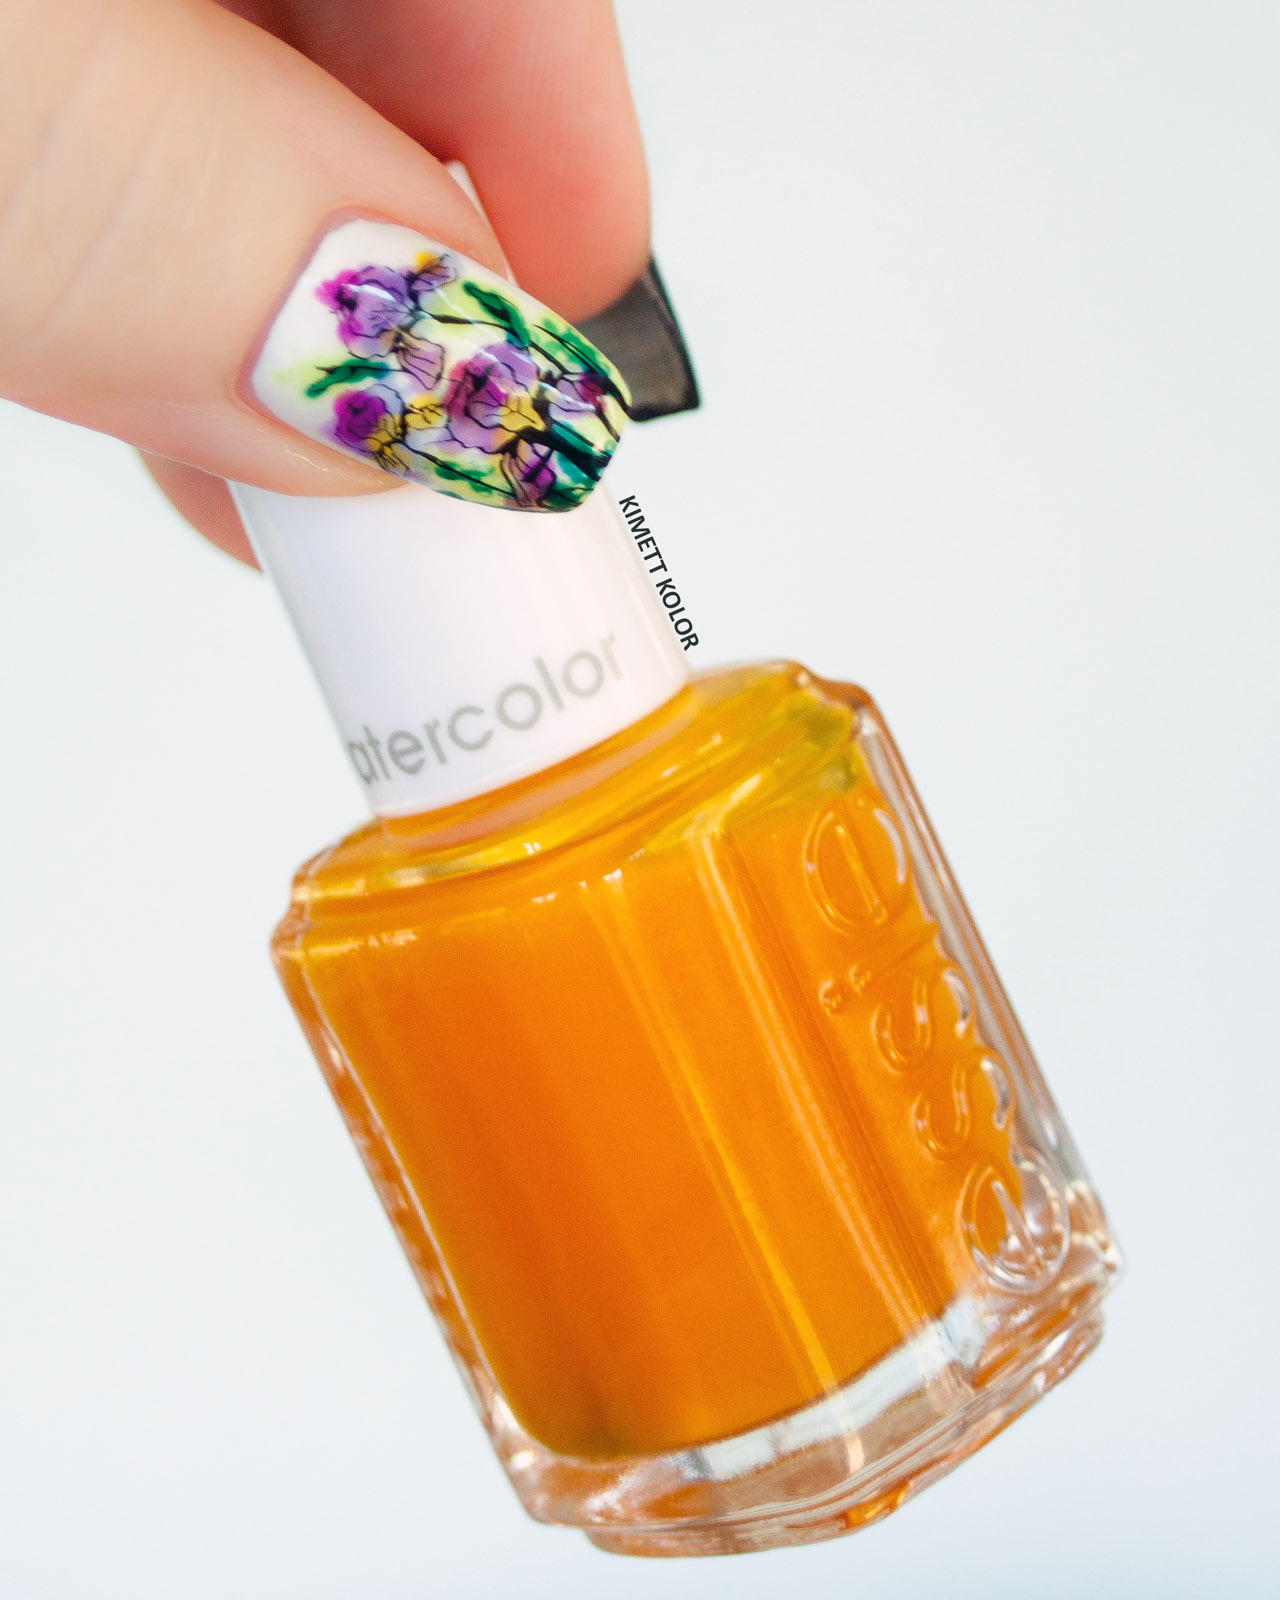 Kimett Kolor Essie Muse, Myself Yellow Jelly nail polish